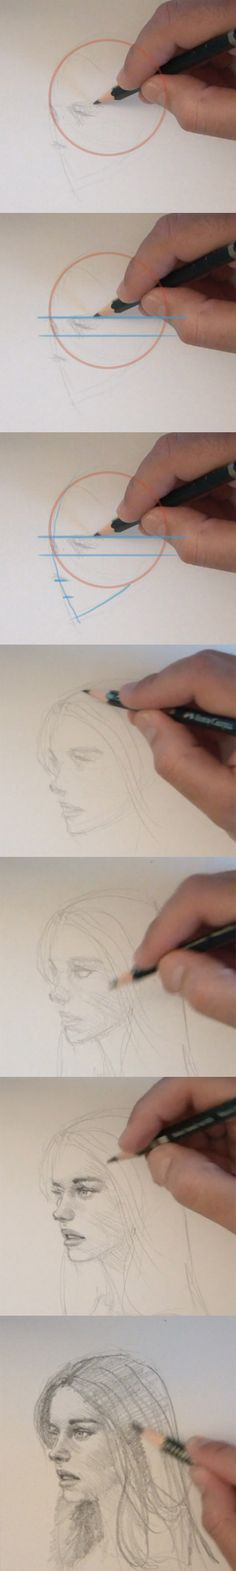 learn to draw people face, normally I don't like these kind of tutorials, but I like the end result